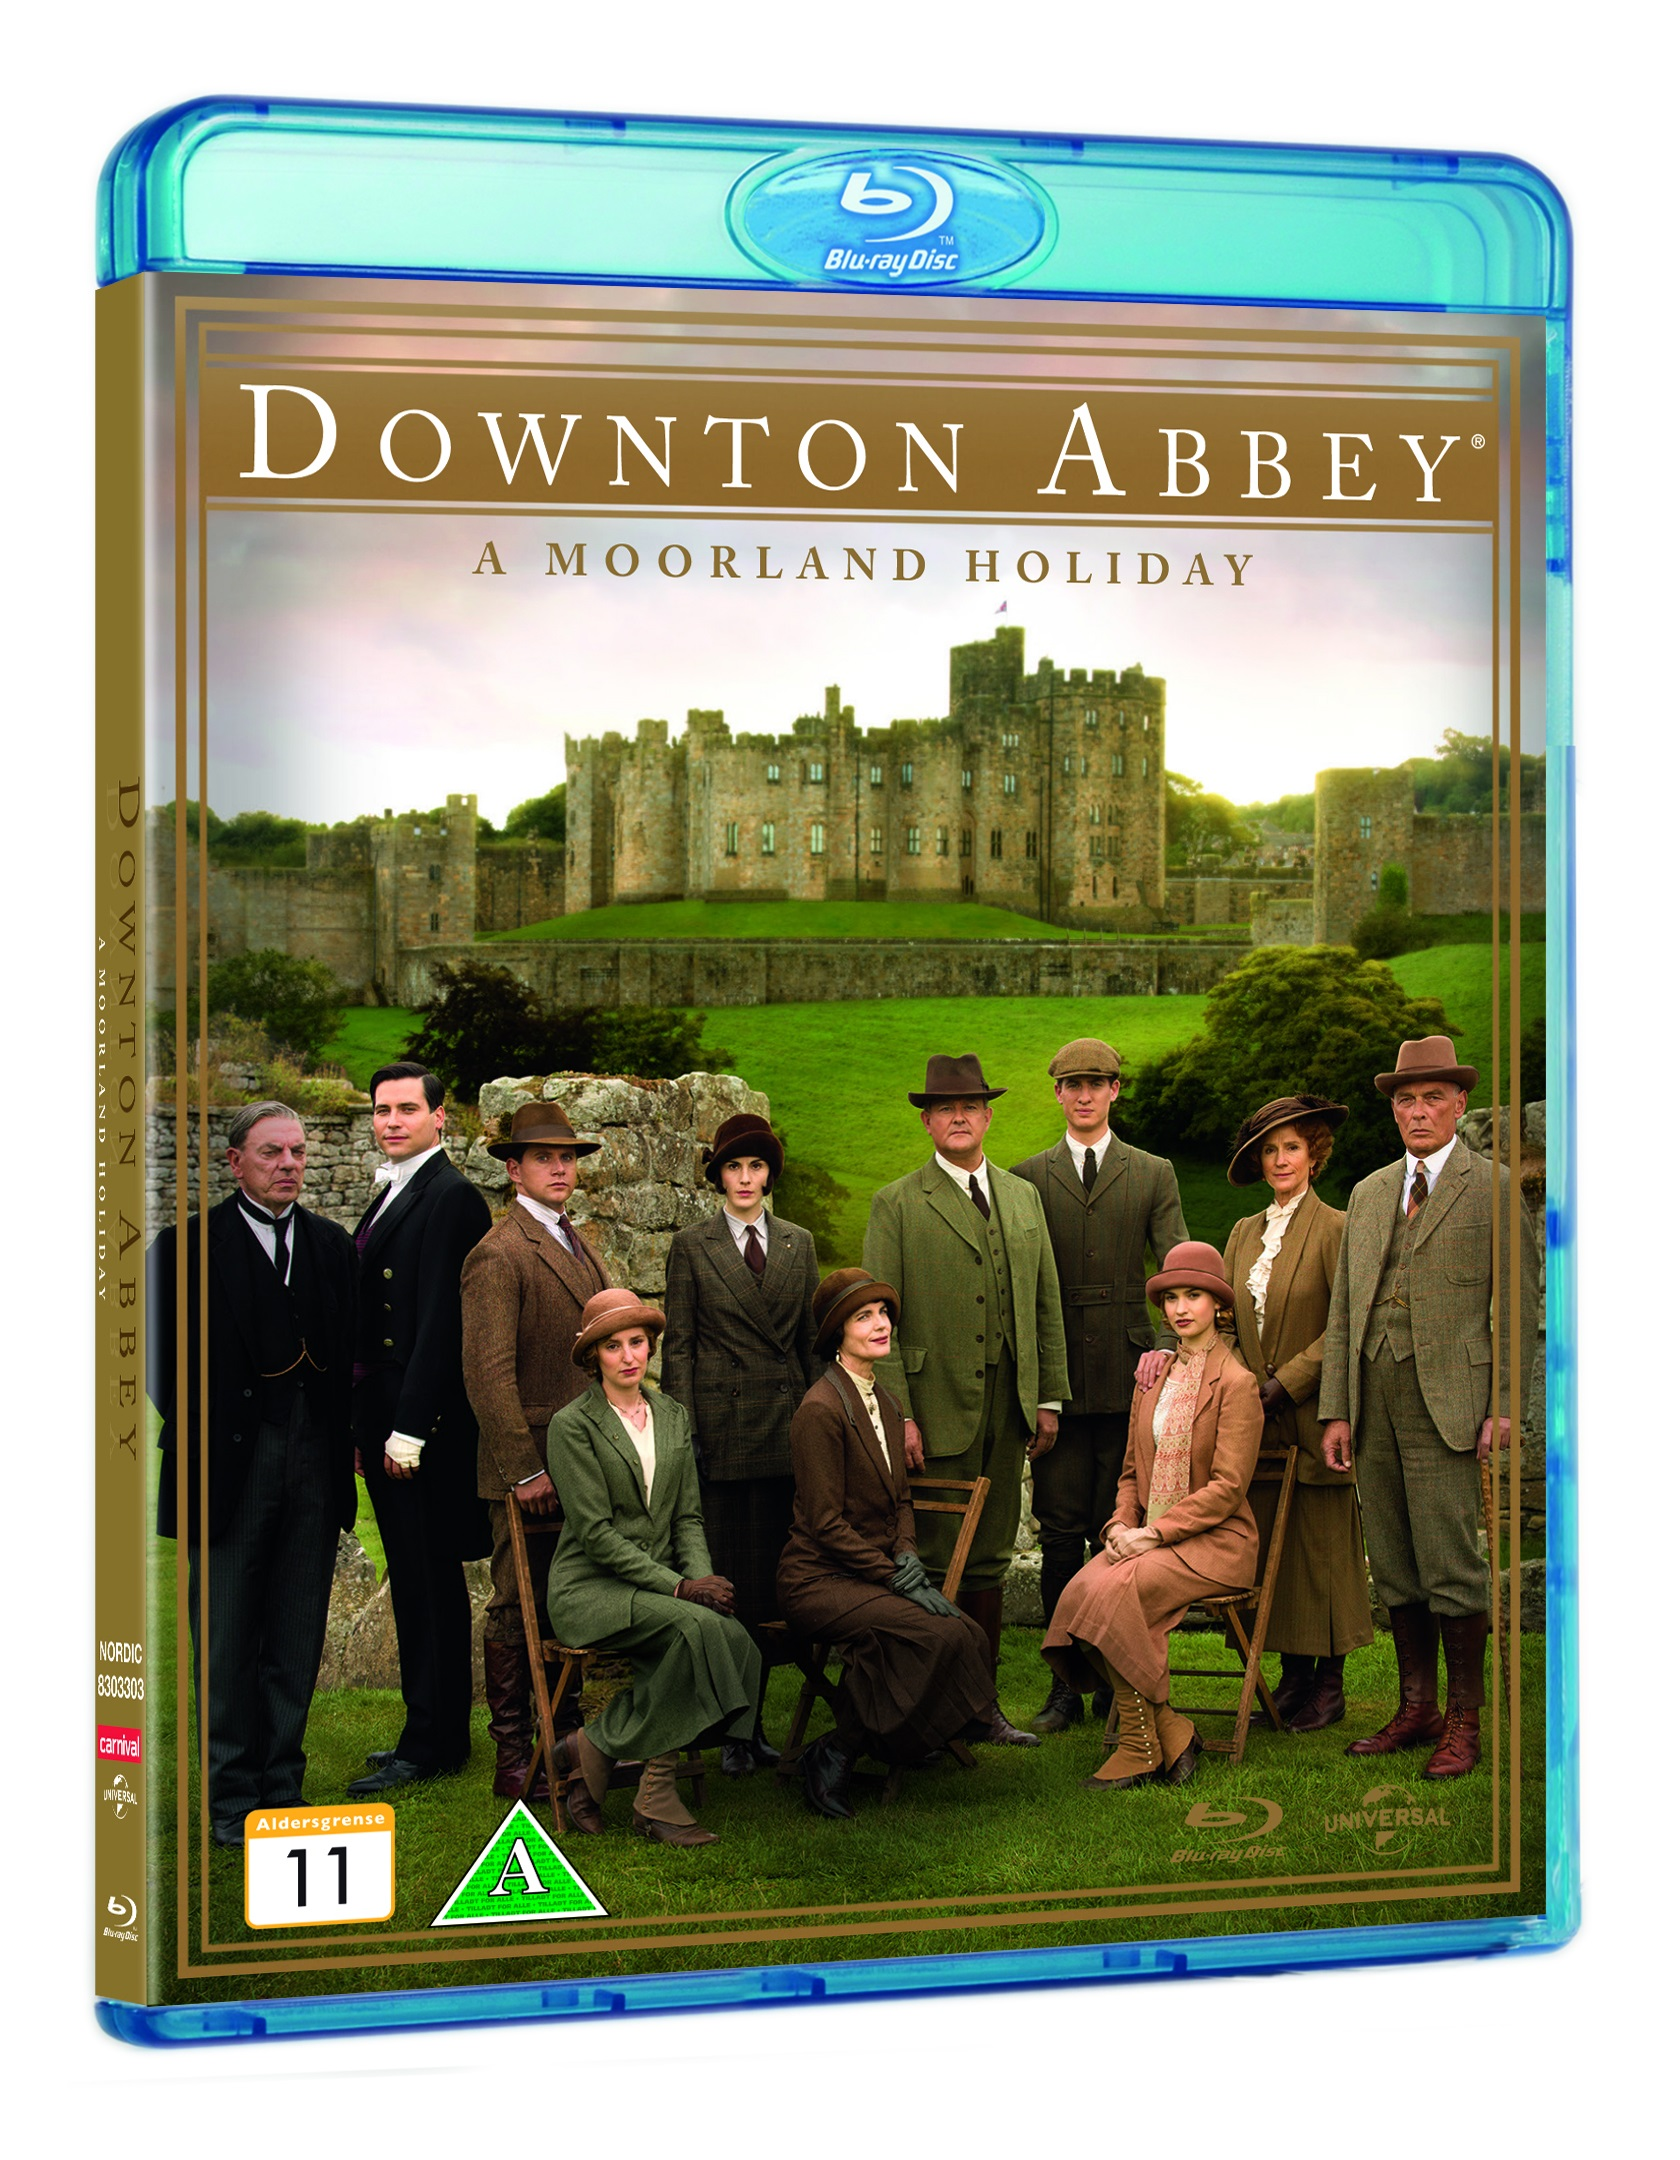 Downton Abbey - A Moorland Holiday -  - Film - Universal - 5053083033033 - 8/5-2015